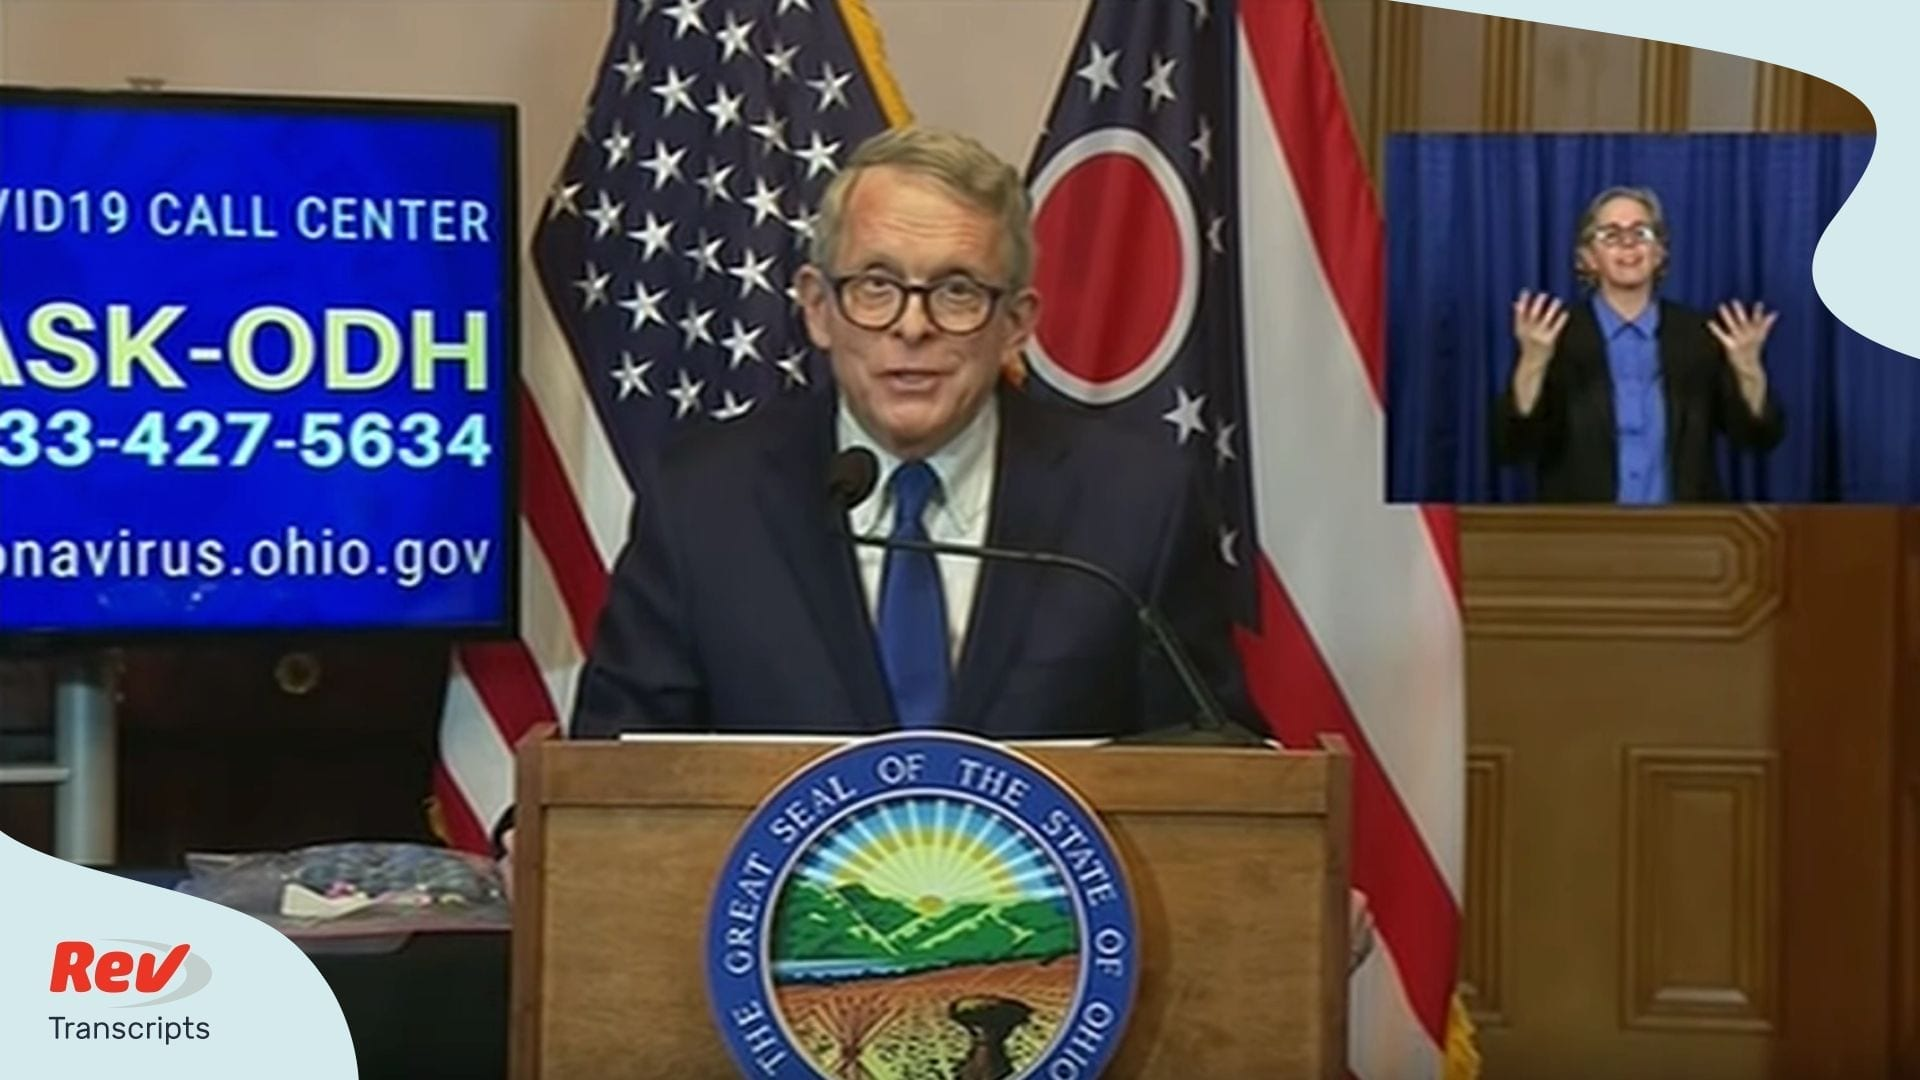 Ohio Governor Coronavirus Press Conference